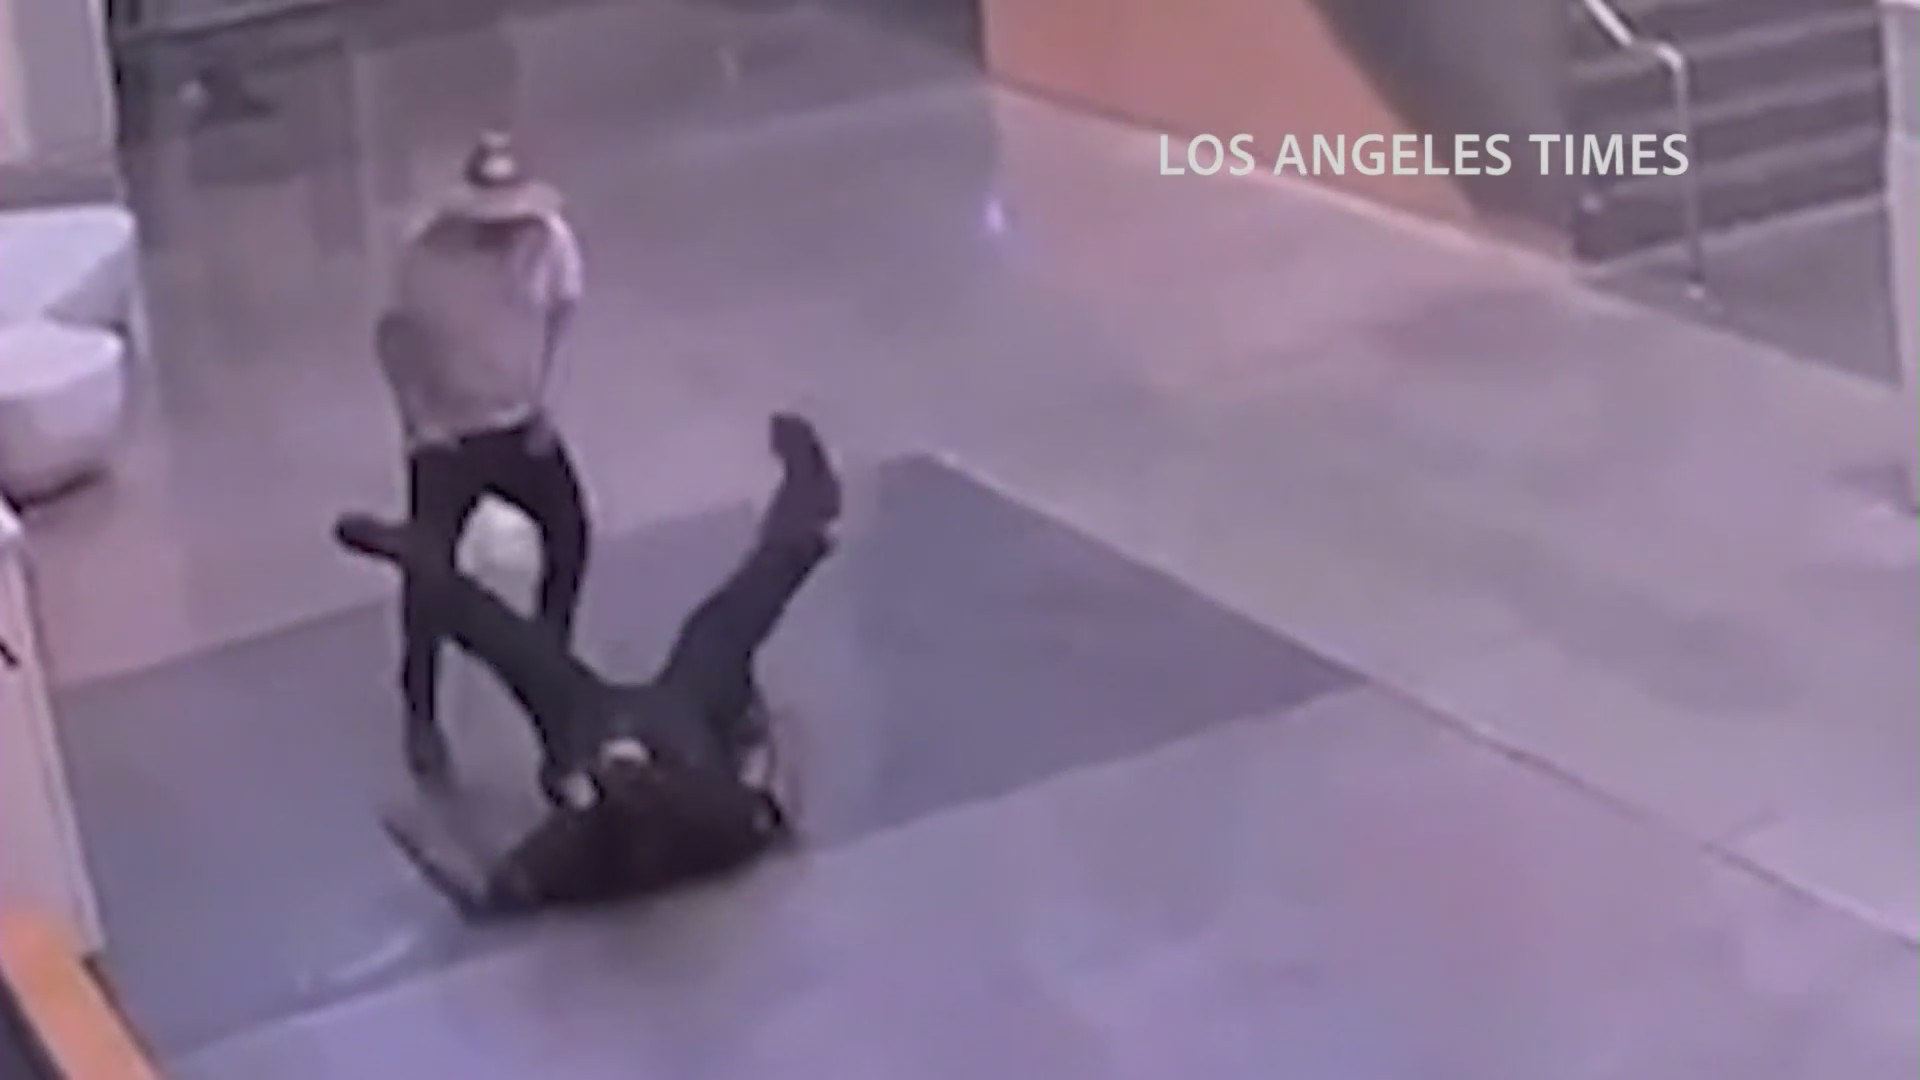 A screenshot from a security video obtained by The Los Angeles Times shows Jose Cerpa Guzman attacking LAPD officer at the Harbor Station in San Pedro on Sept. 26, 2020.